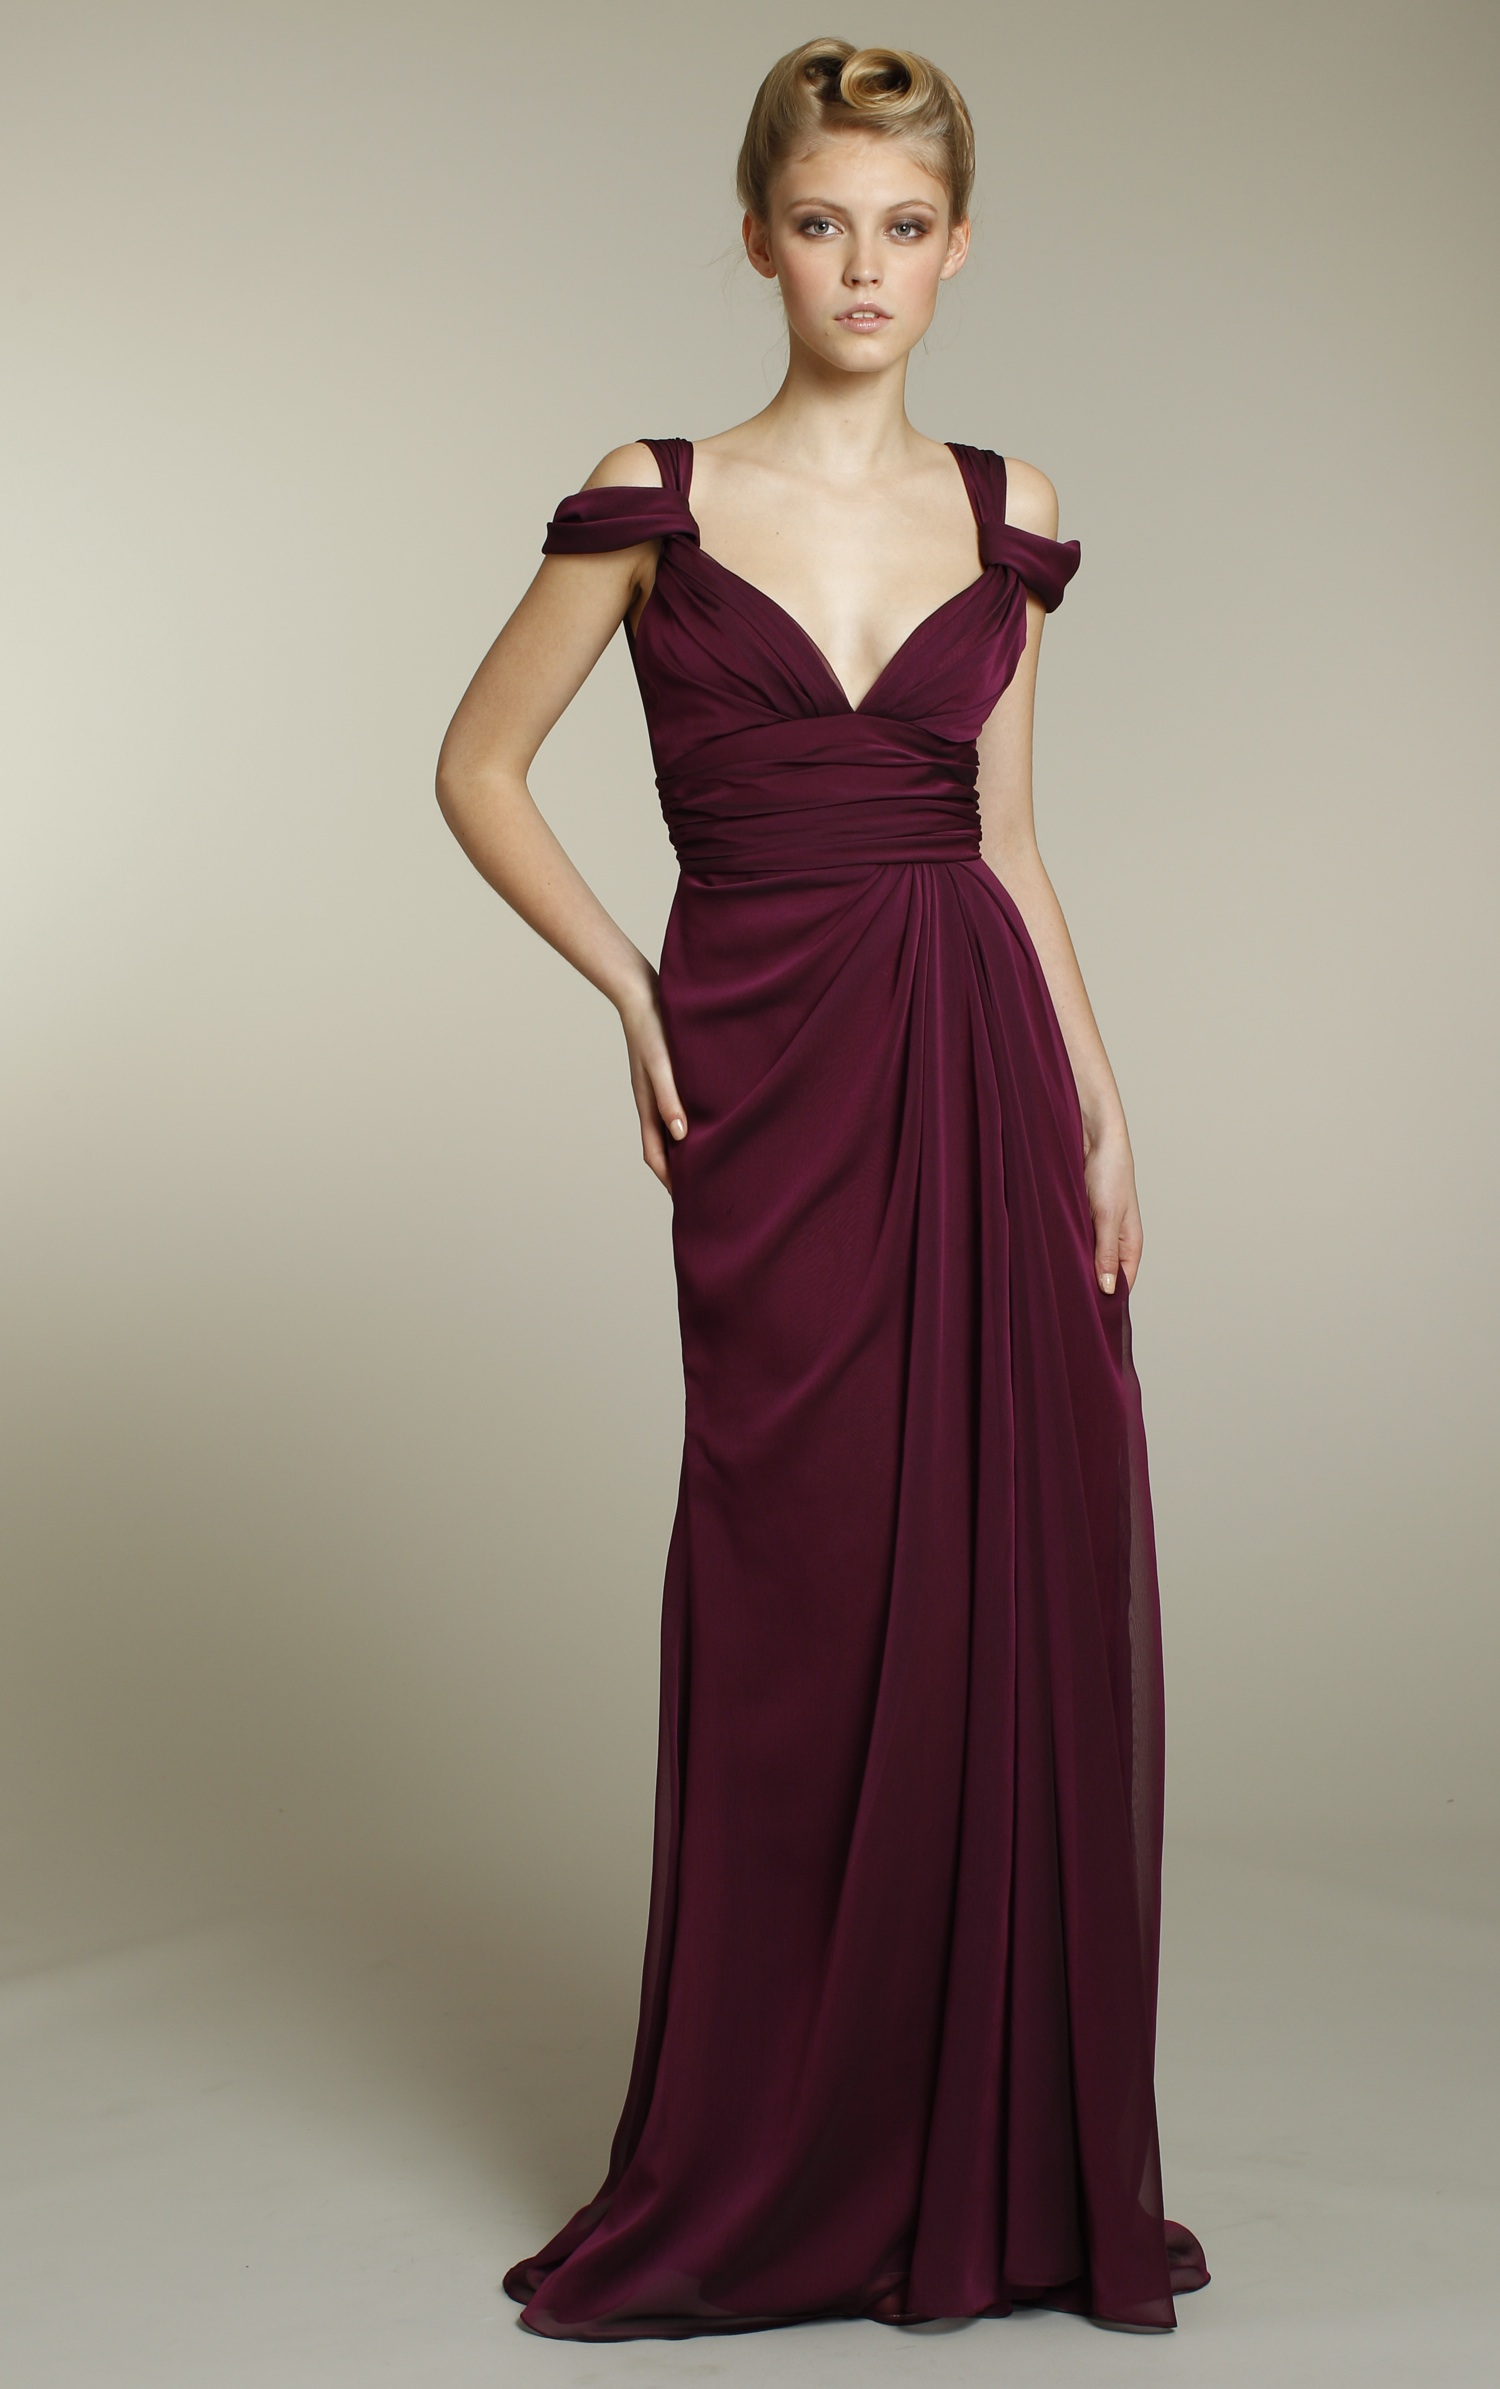 long chiffon bridesmaids dress in rich maroon color With maroon wedding dress